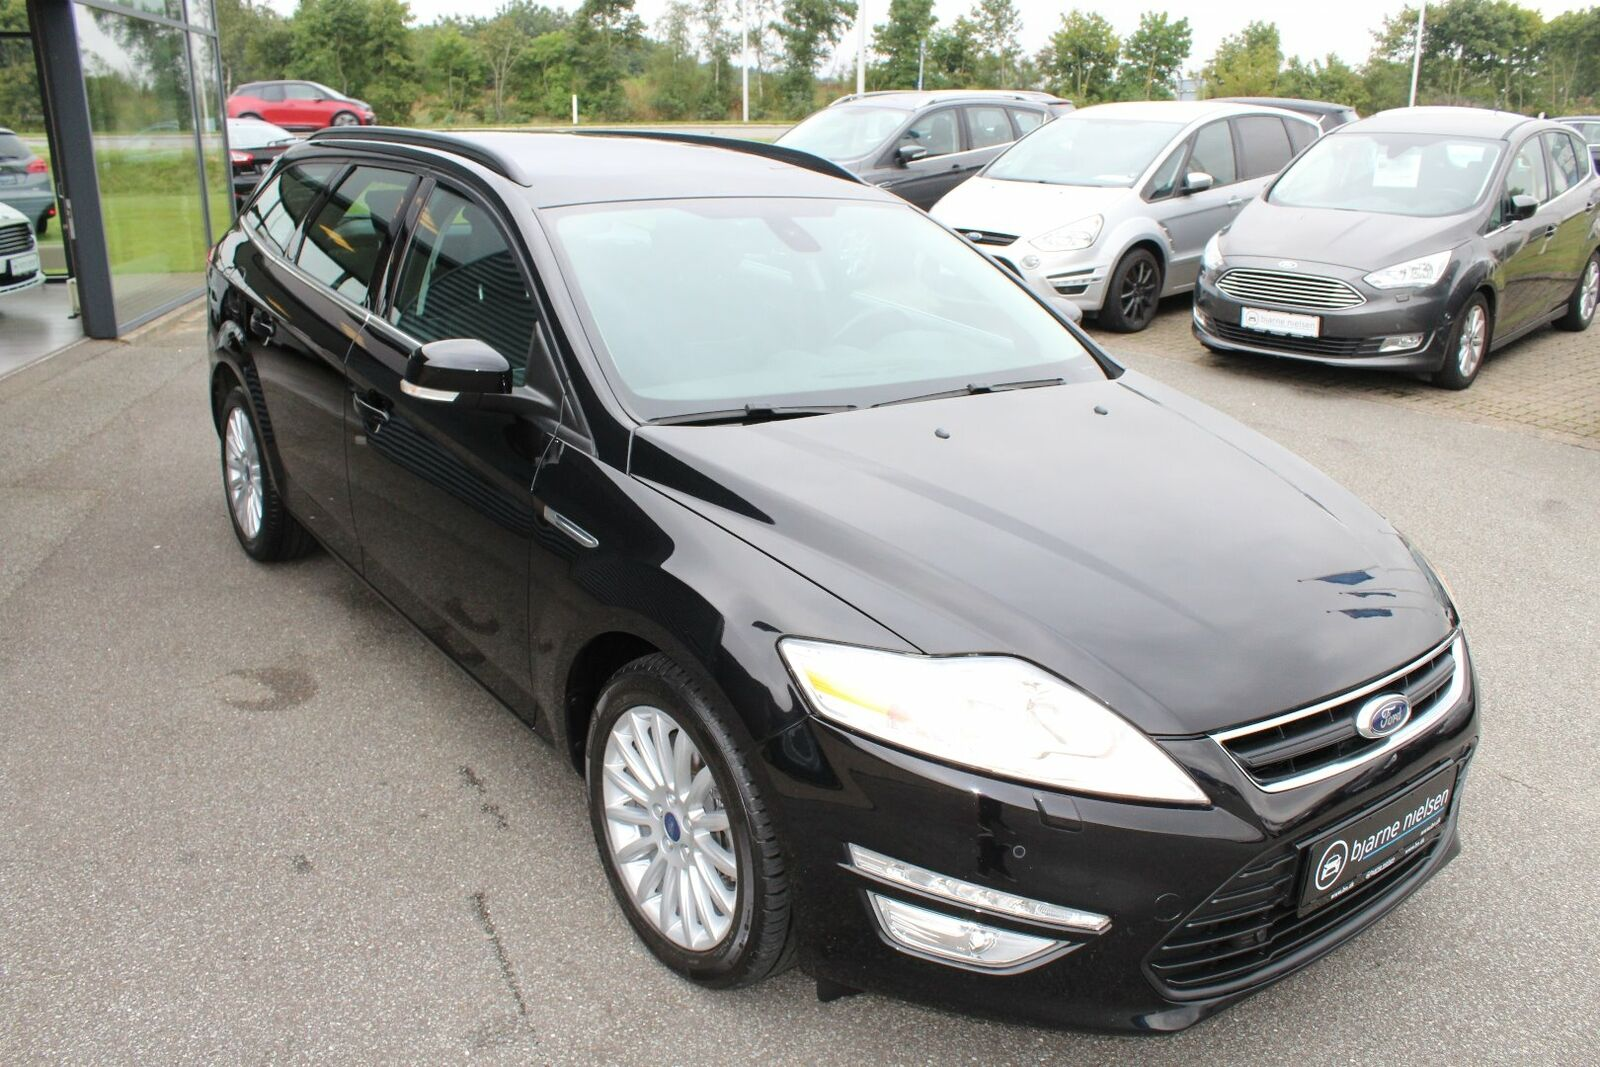 Ford Mondeo 2,0 TDCi 140 Collection stc. aut - billede 7